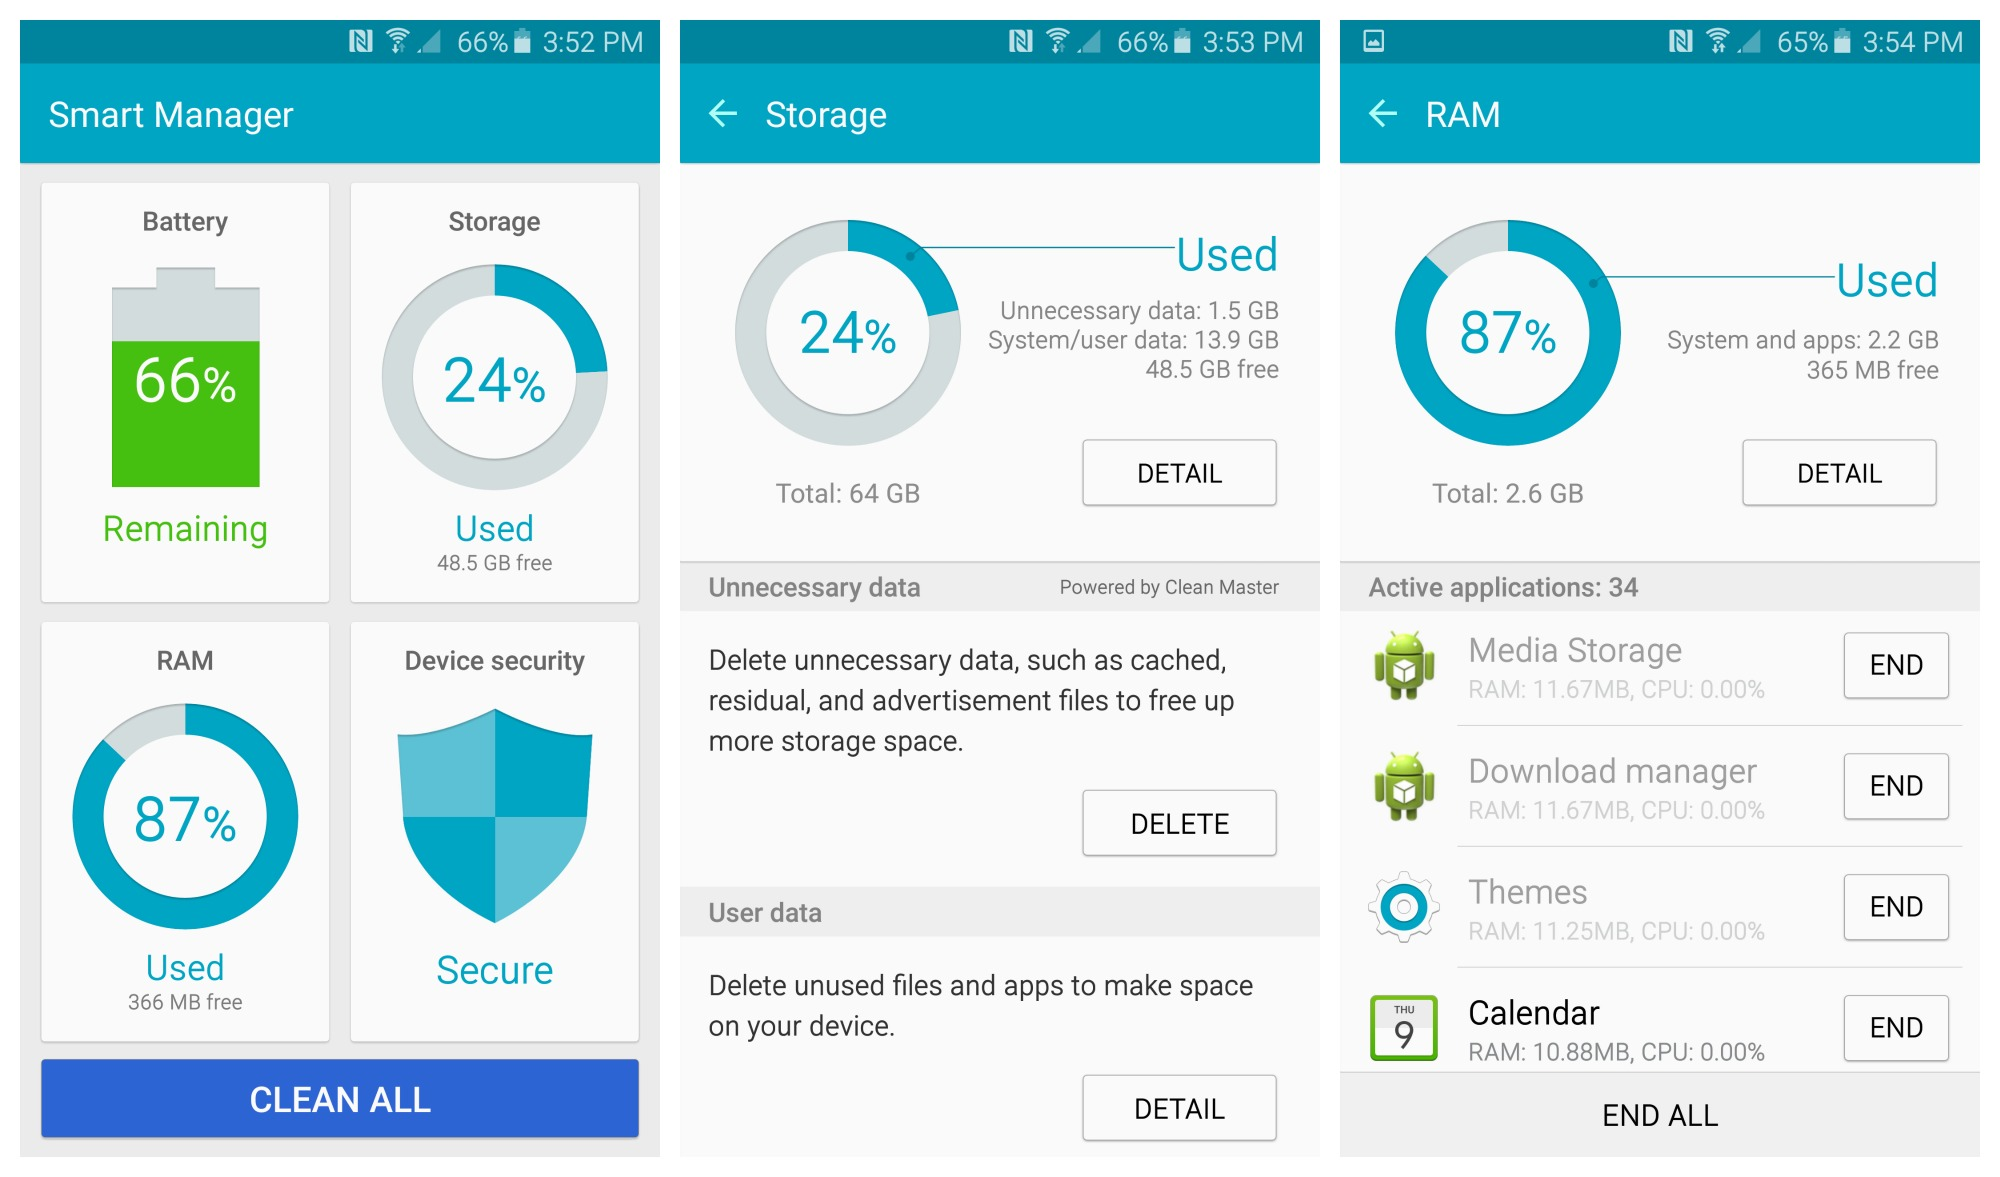 7 best ways to improve Galaxy S6 or S6 Edge Battery Life.